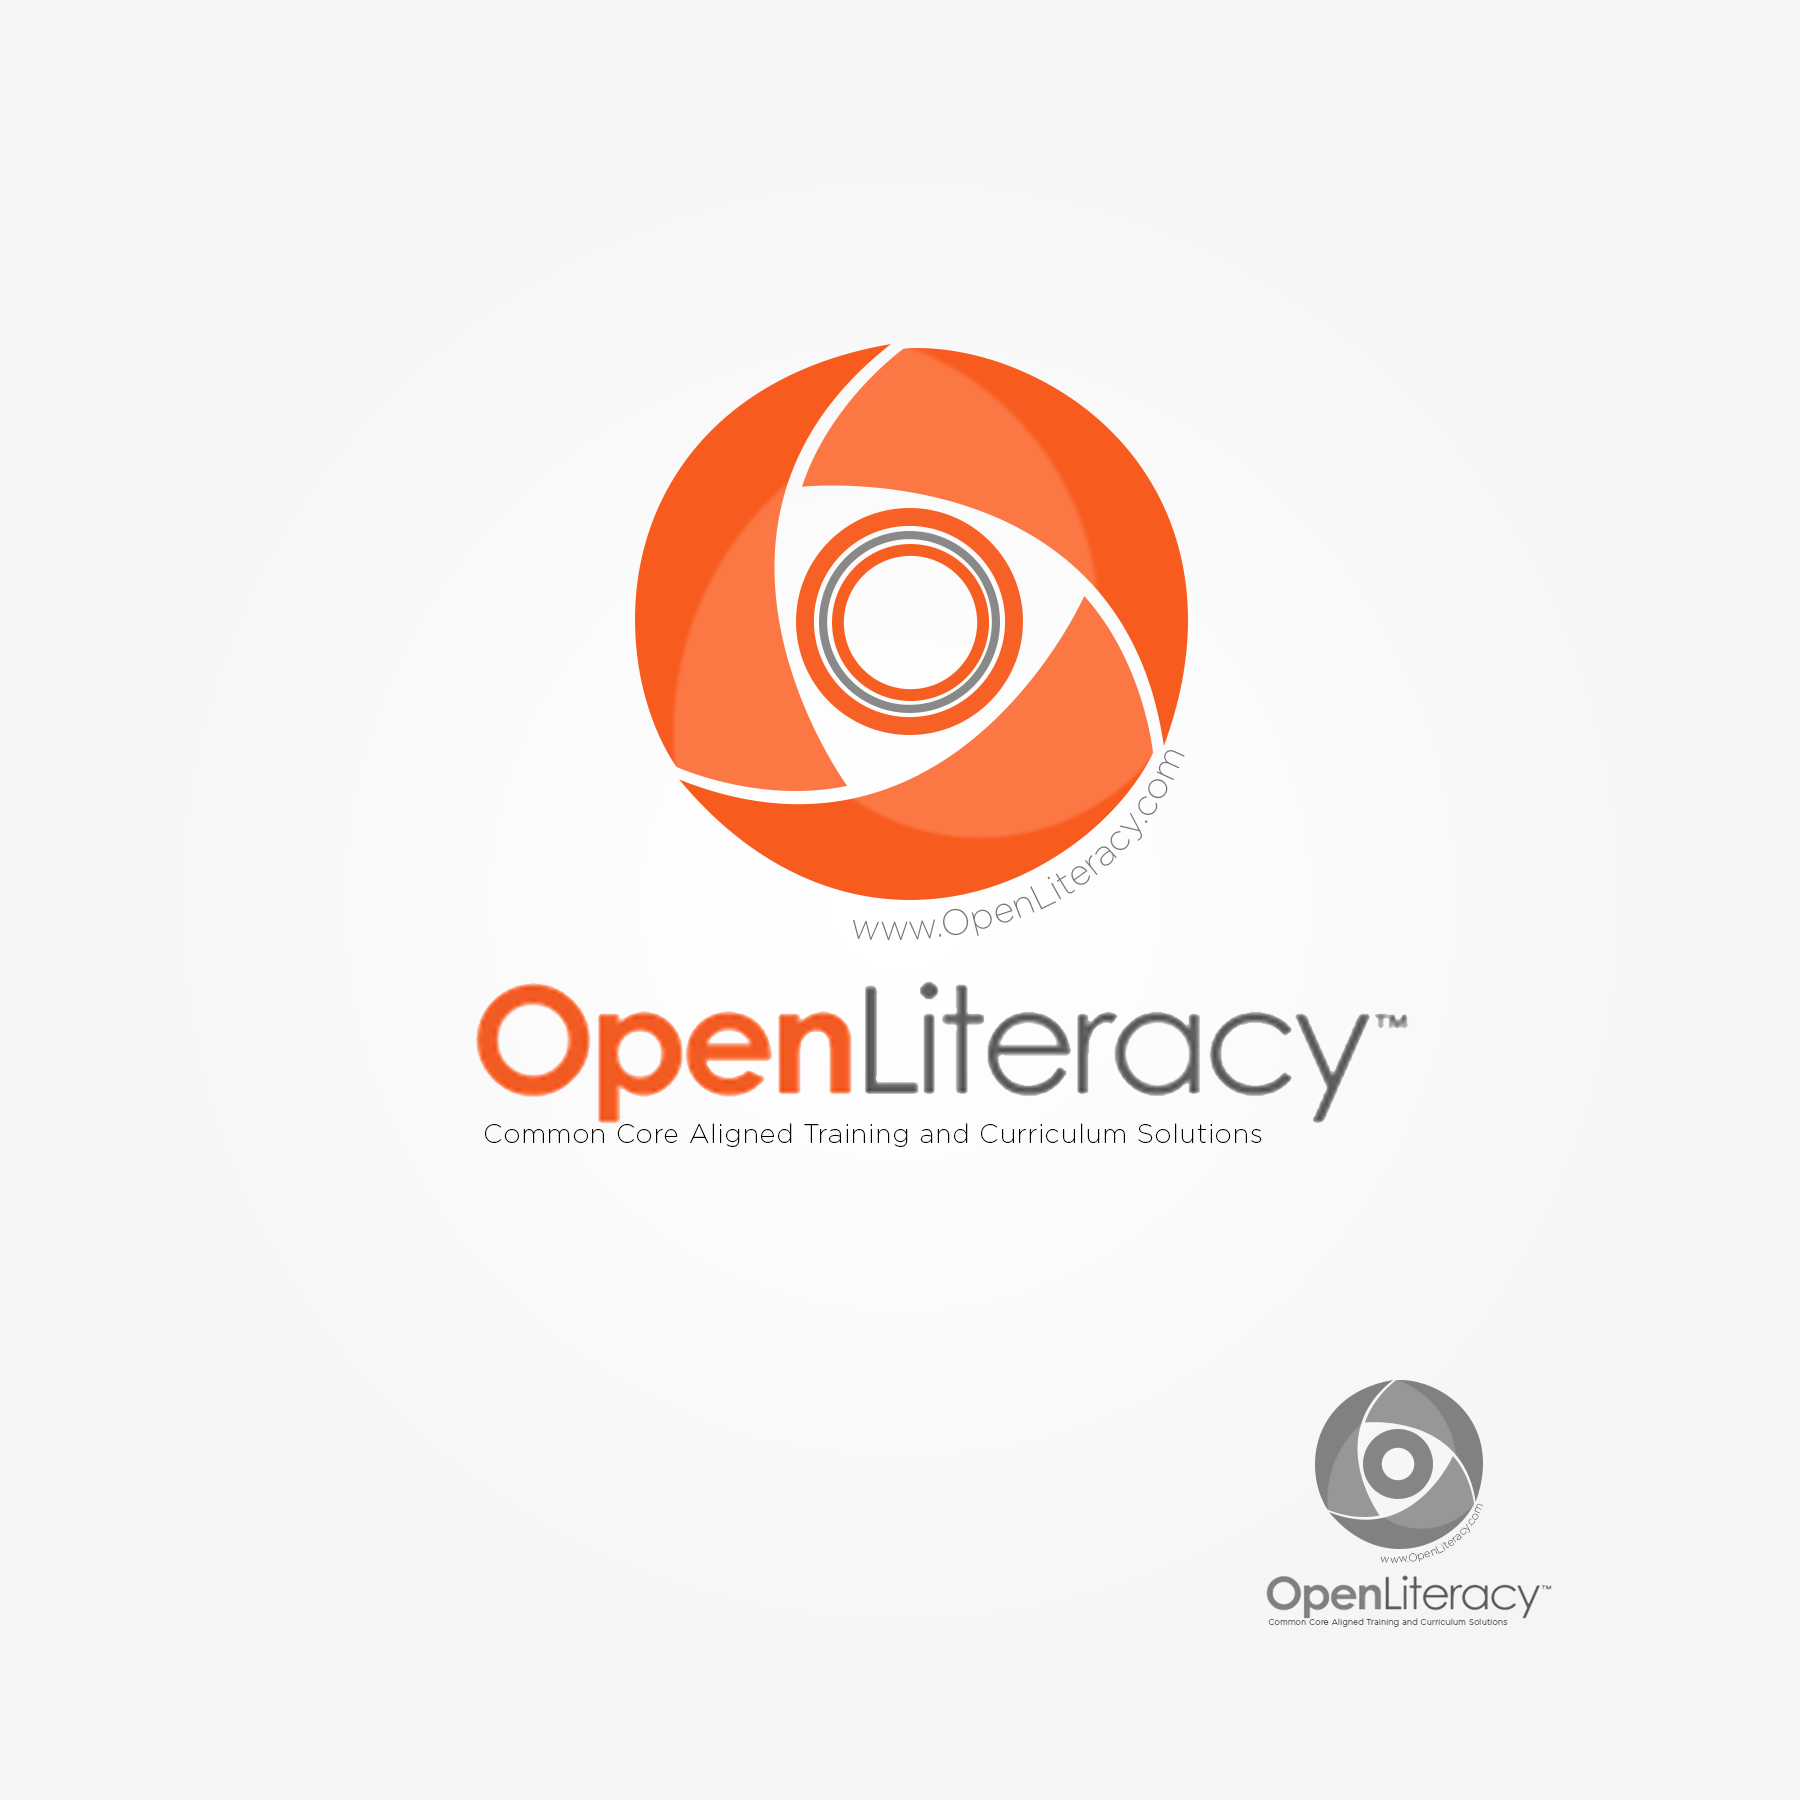 Logo Design by Lemuel Arvin Tanzo - Entry No. 132 in the Logo Design Contest Inspiring Logo Design for OpenLiteracy.